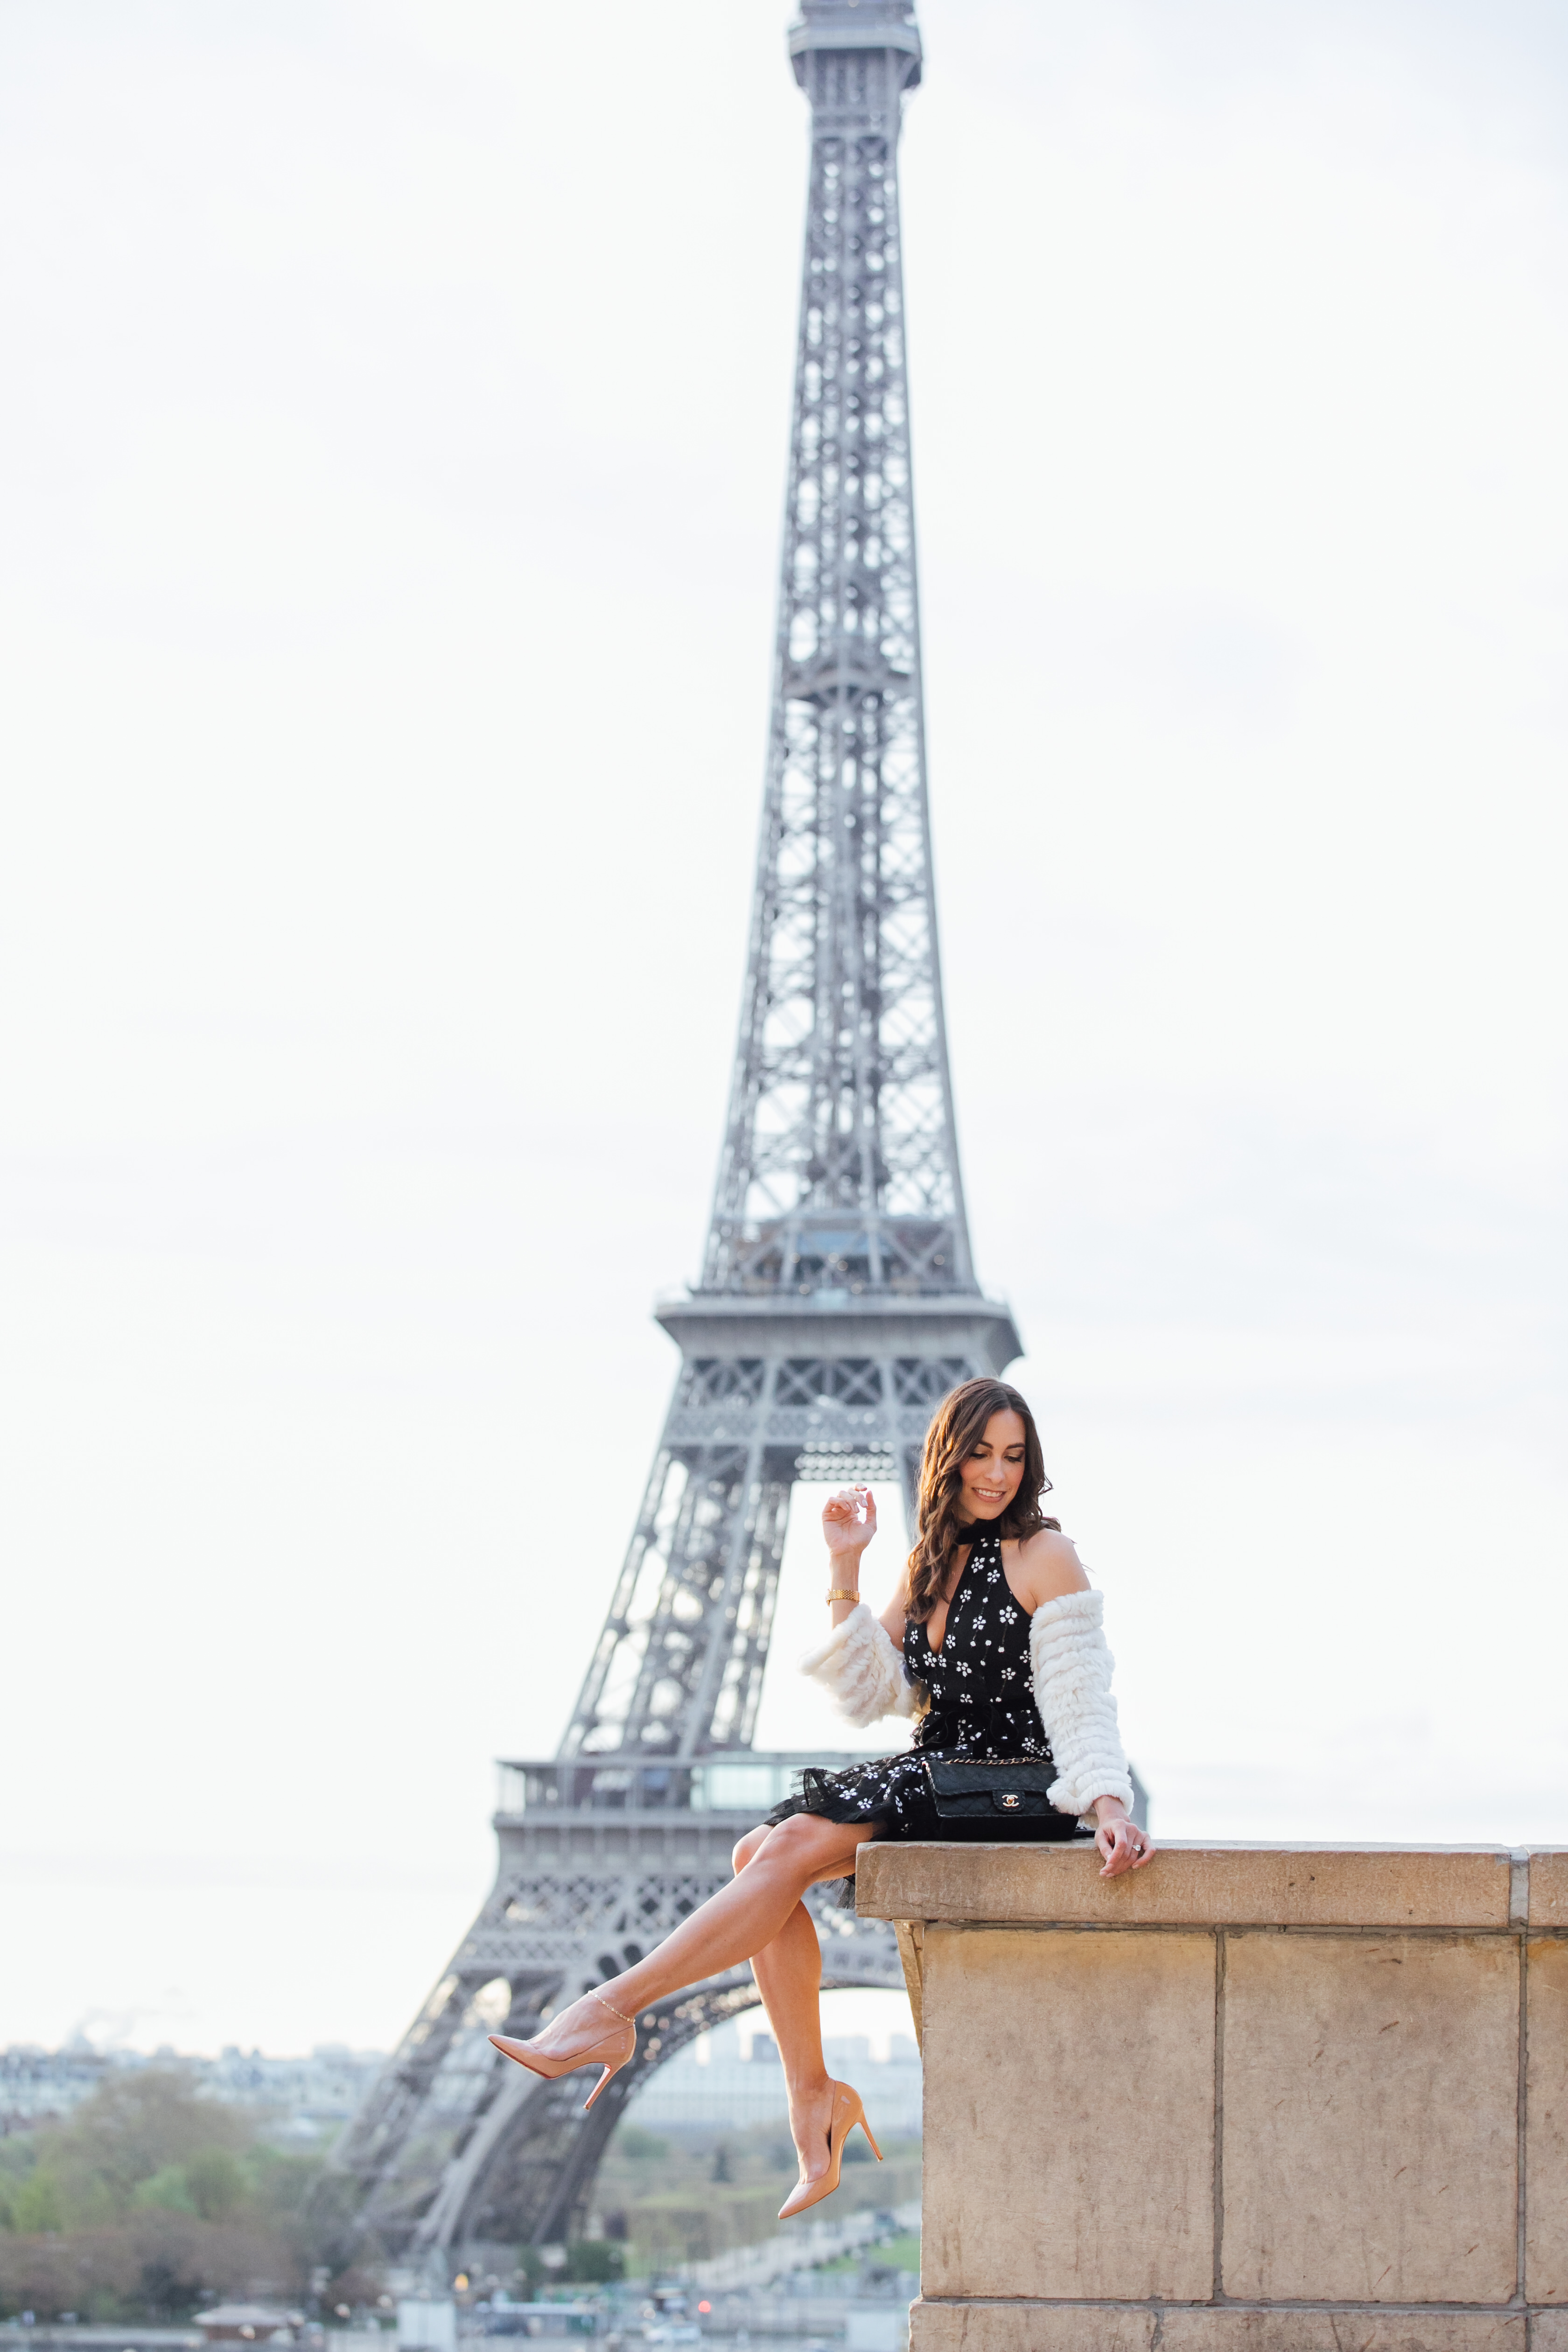 Alexis dresses are perfect for Spring Paris fashion as shown by Amanda of A Glam Lifestyle blog in the Alexis Poppy dress